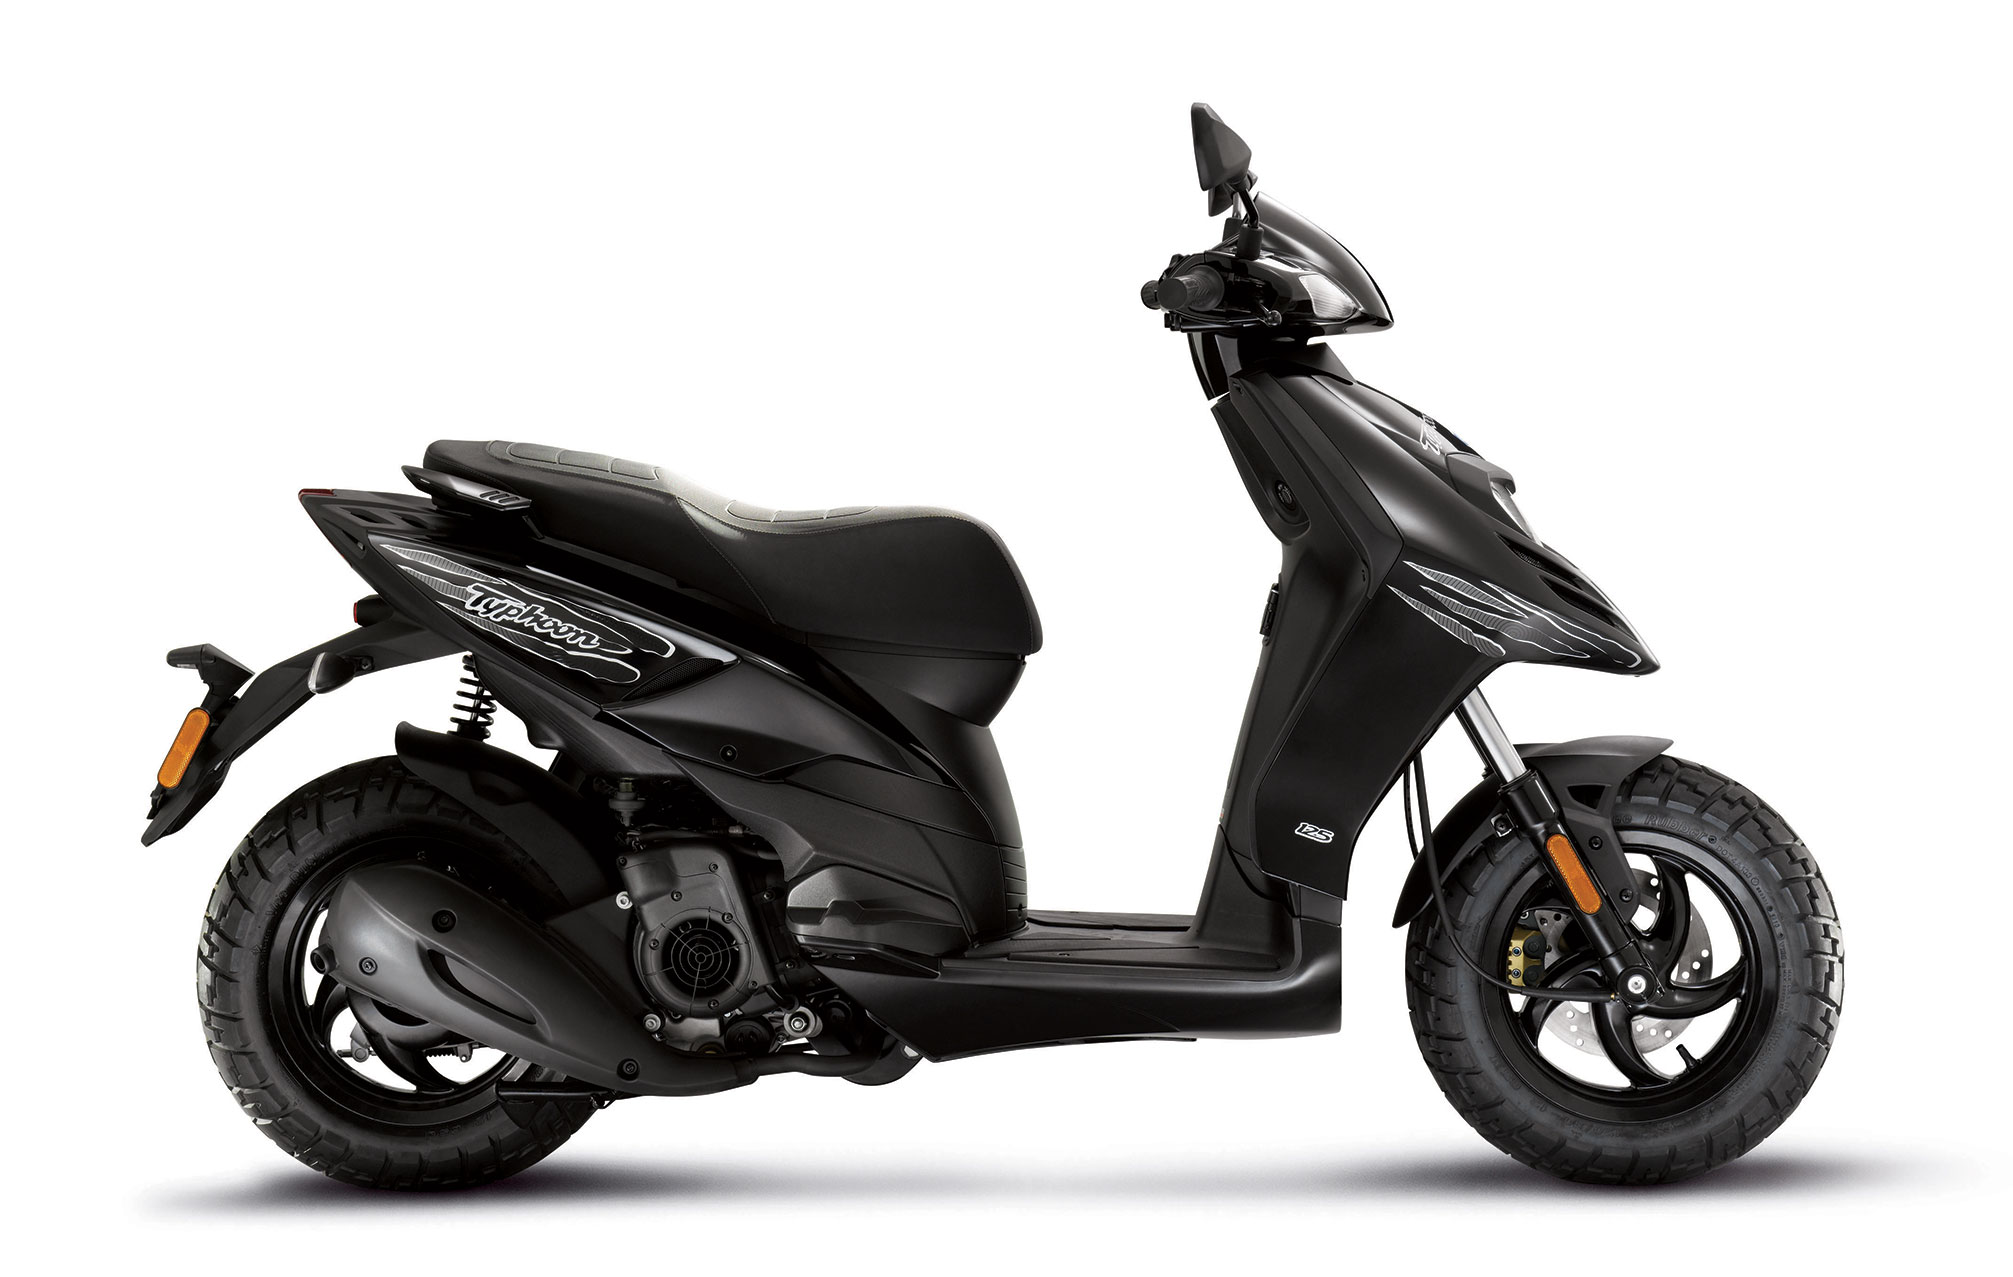 2013 piaggio typhoon 125 scooter review